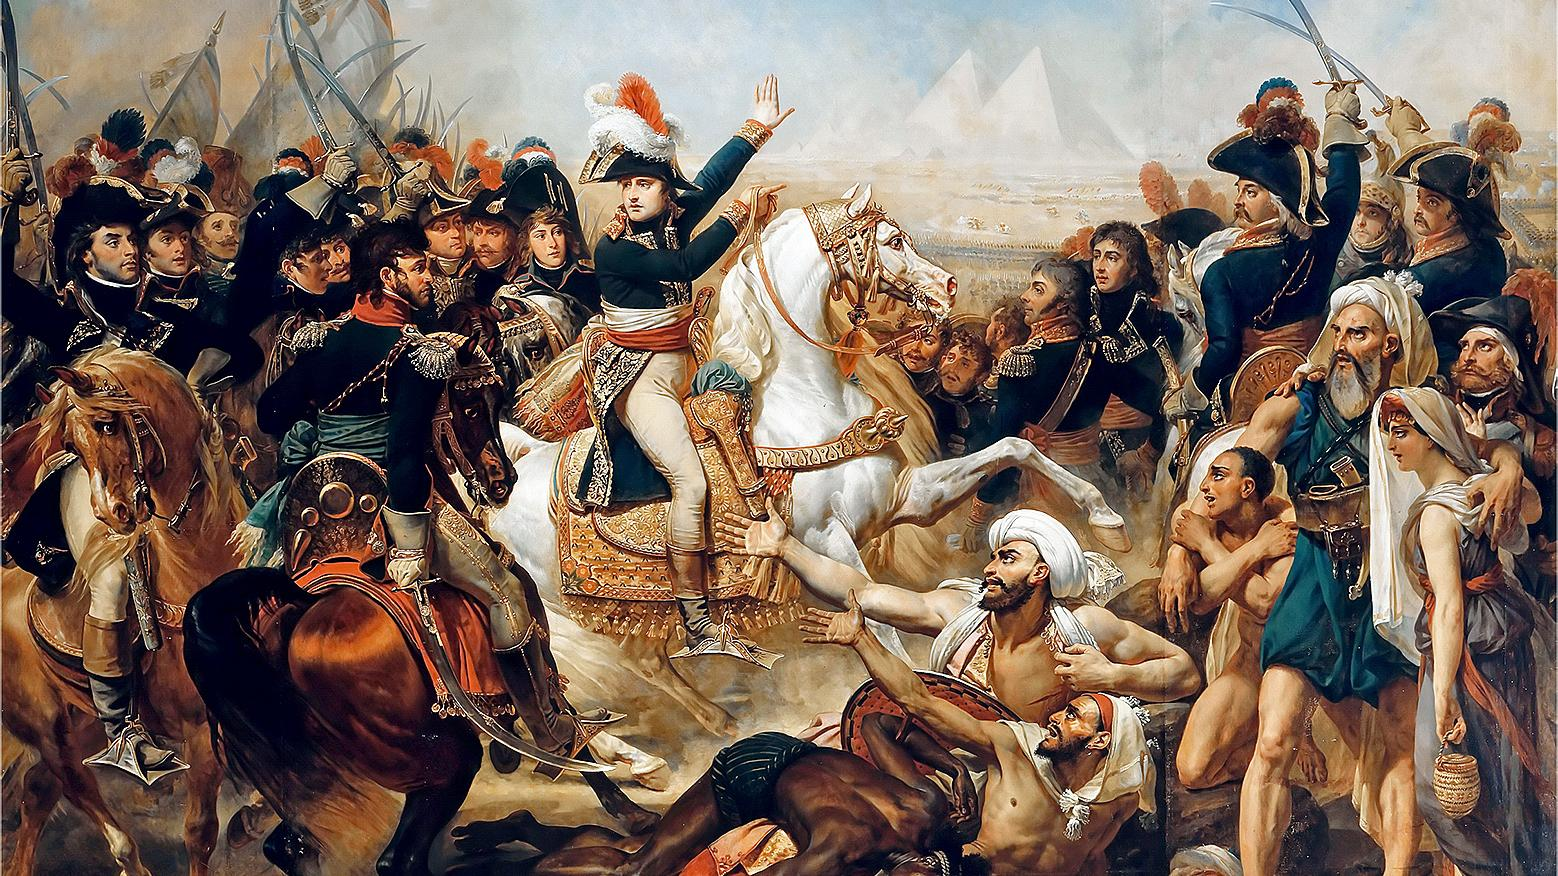 Image [Napoleon crushes the Mamluk army in 1798. The shock caused the Islamic world to start modernising. FINE ART IMAGES/HERITAGE IMAGES]